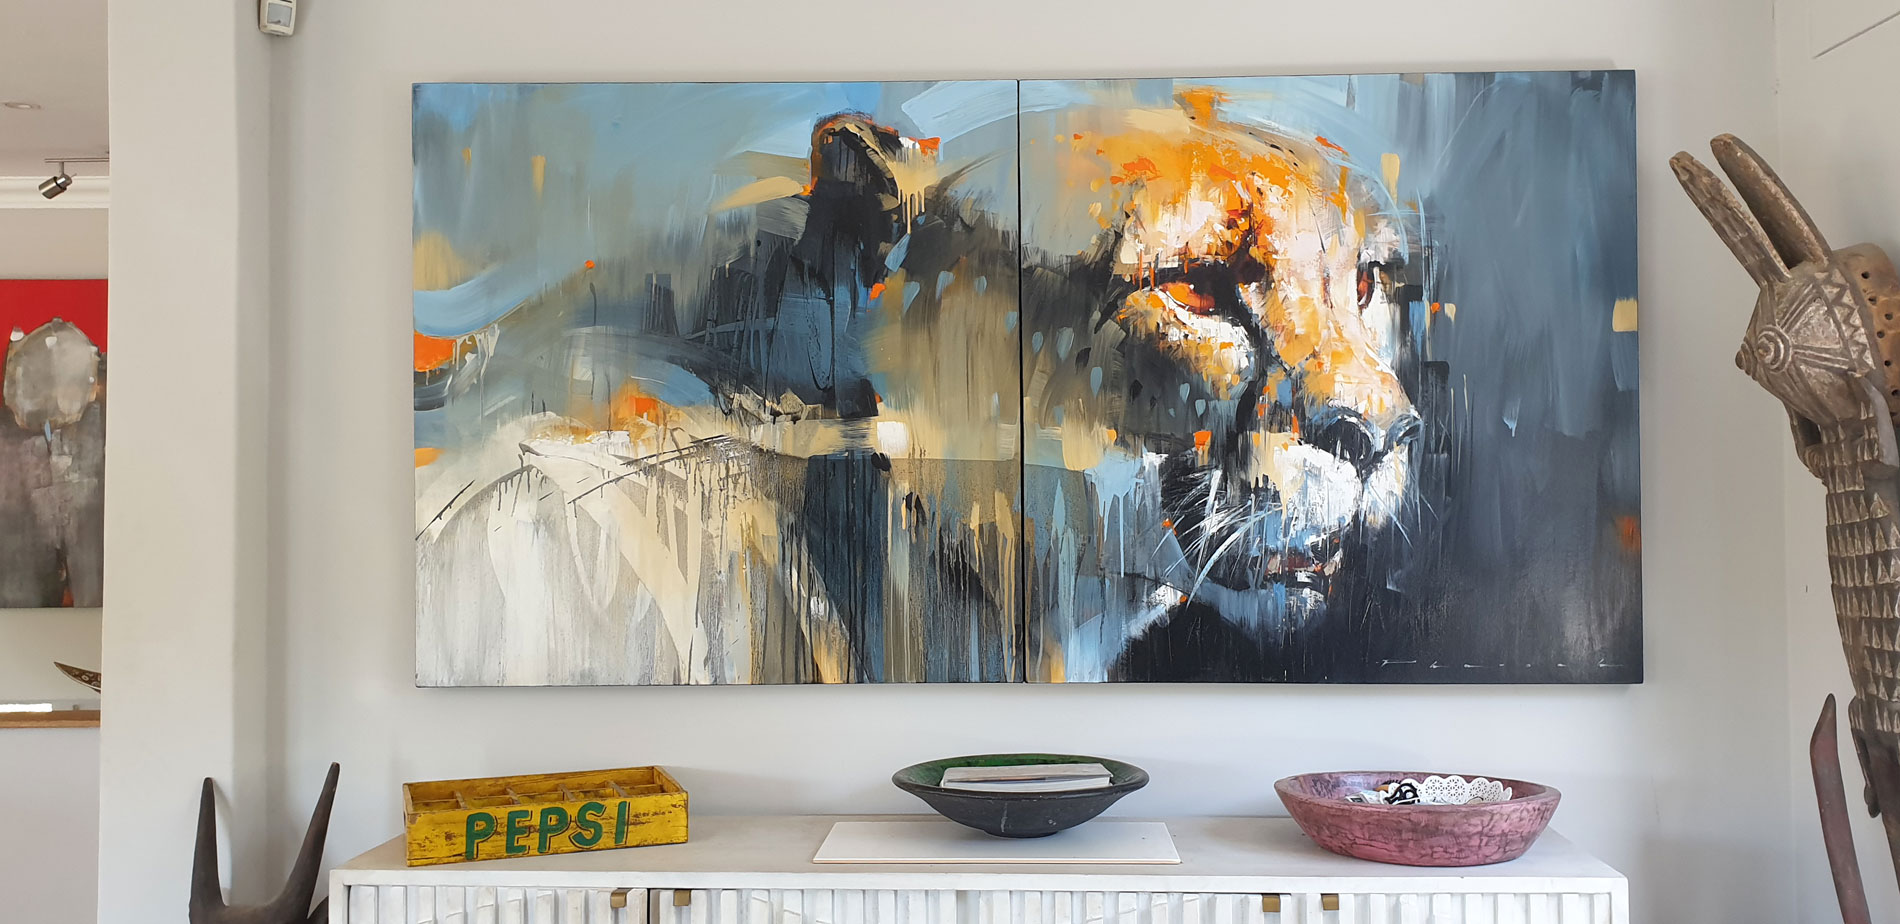 New Cheetah original on display at the artist's home in South Africa